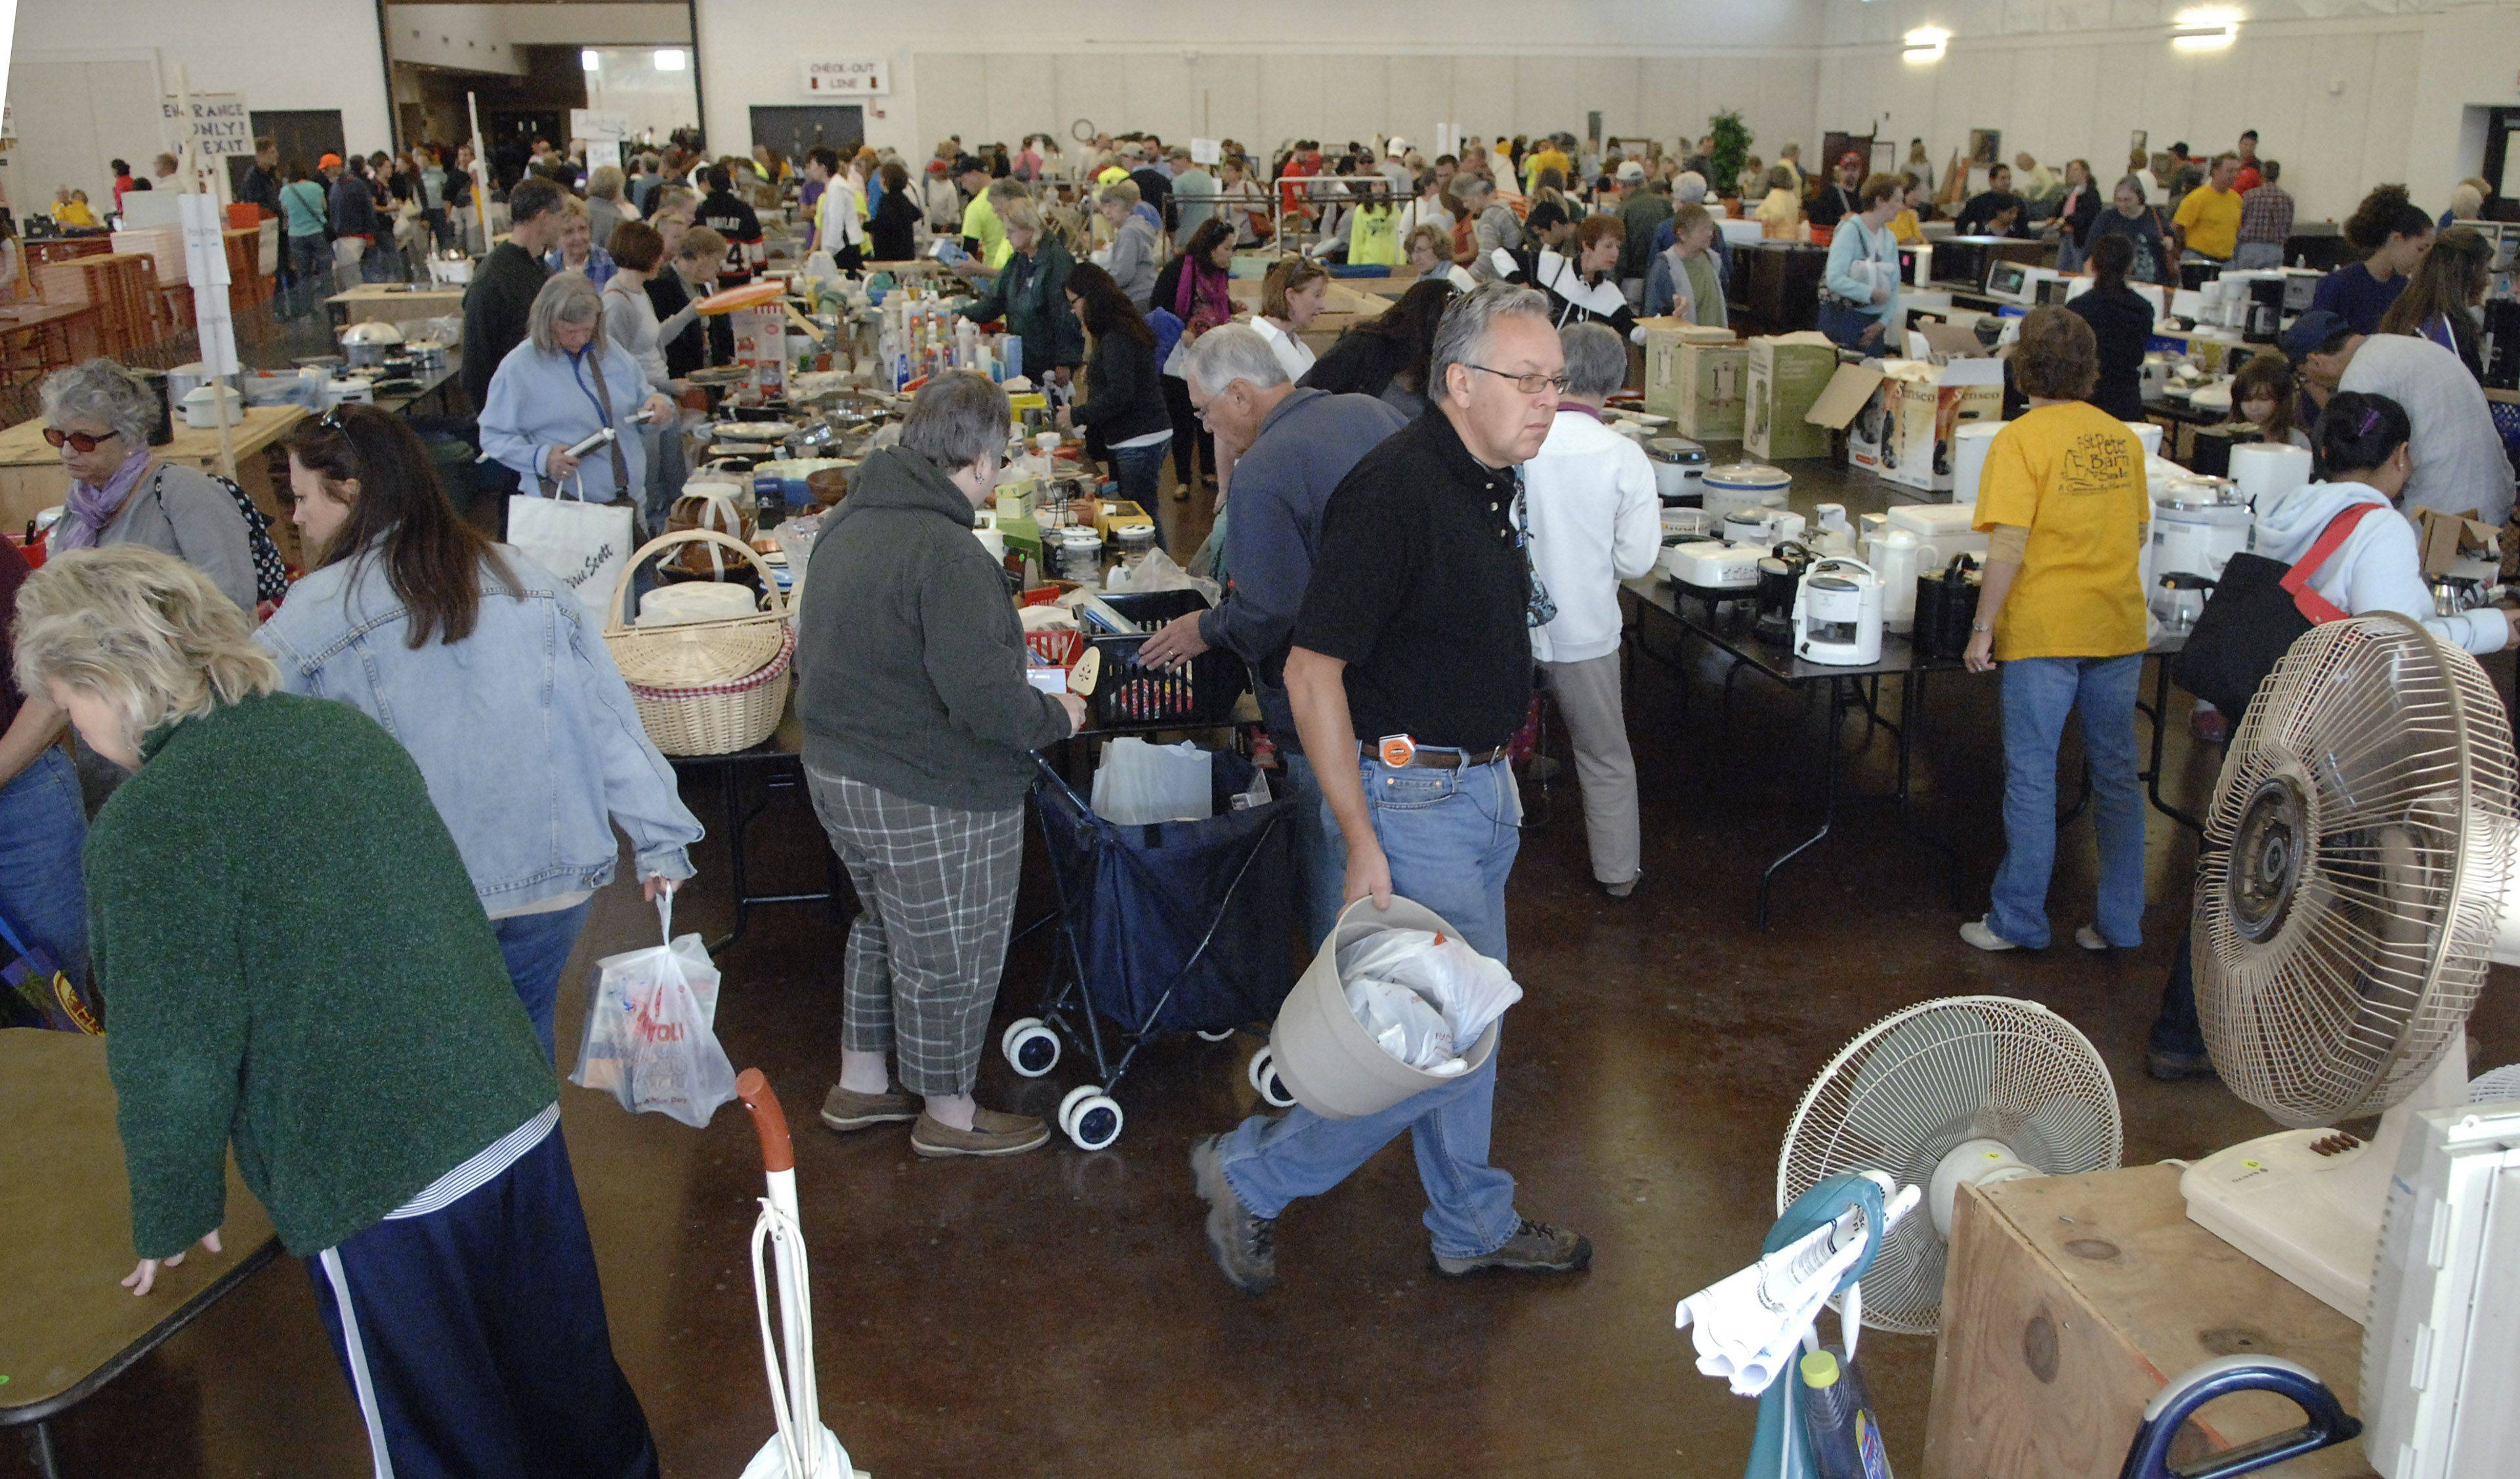 Shoppers packed the kitchen and home appliances area in one of the buildings at the Kane County Fairgrounds for St. Peter Barn Sale Saturday.